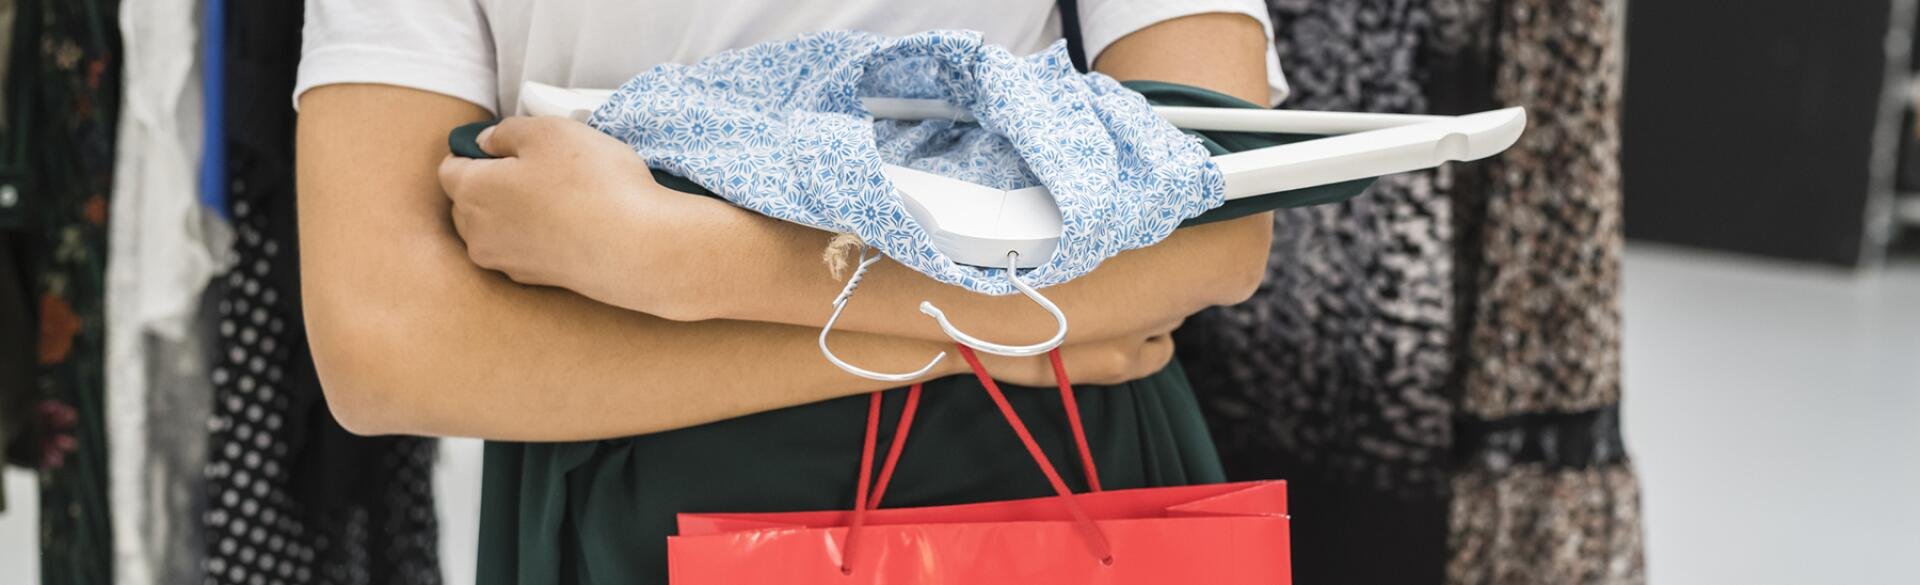 Details Of A Woman Holding Clothes And Bag In A Shop